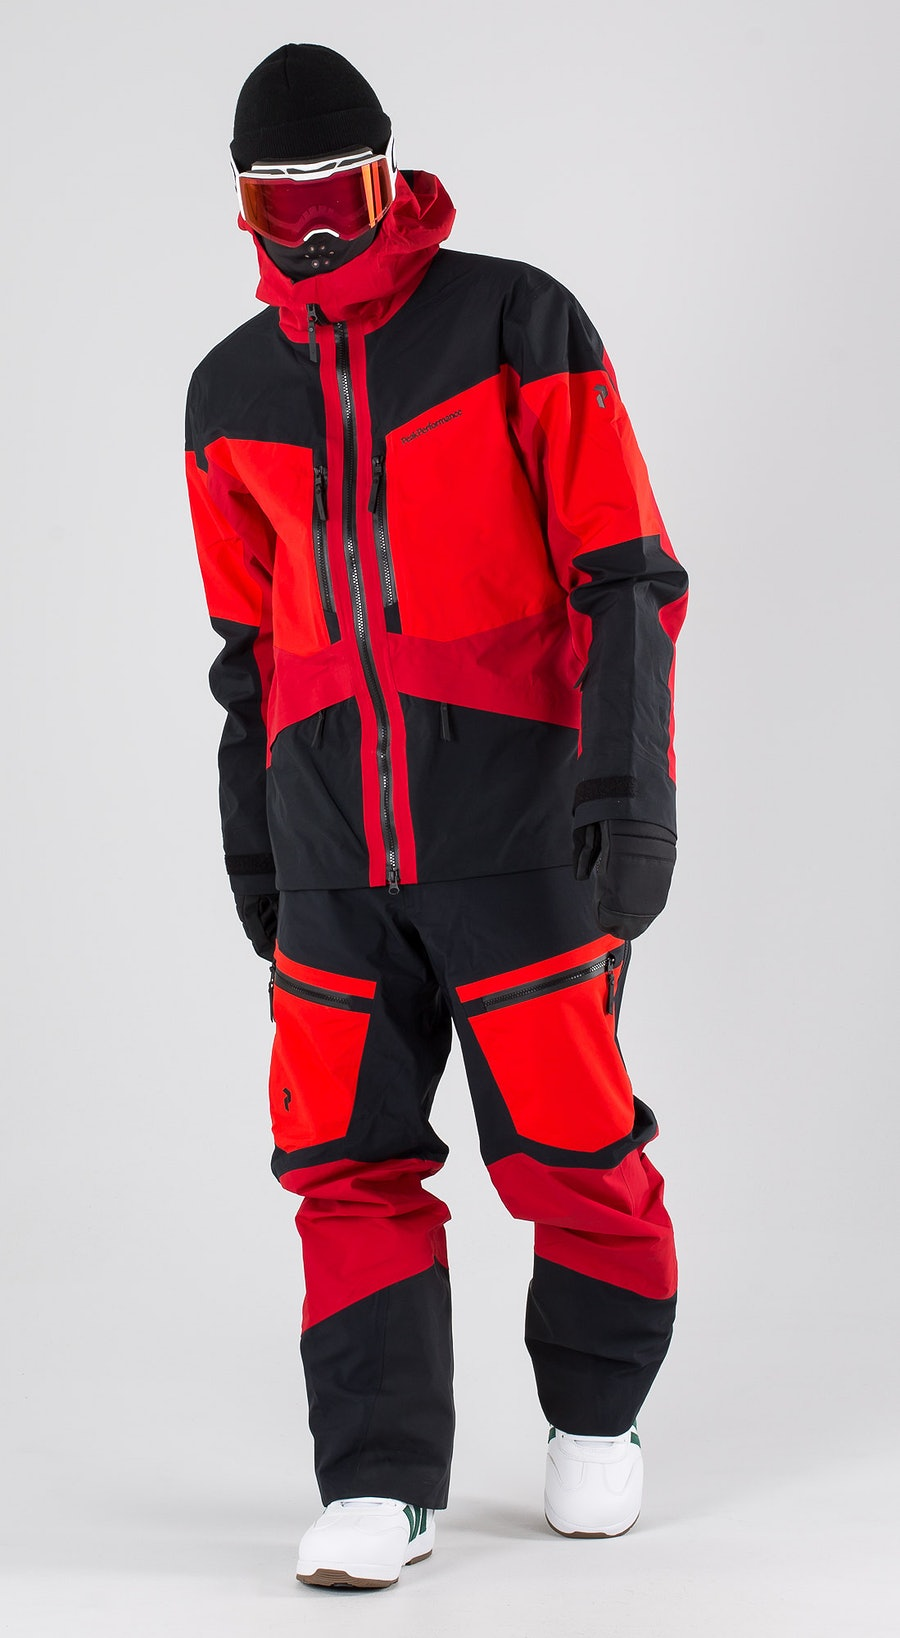 Peak Performance Gravity Dynared Snowboard clothing Multi